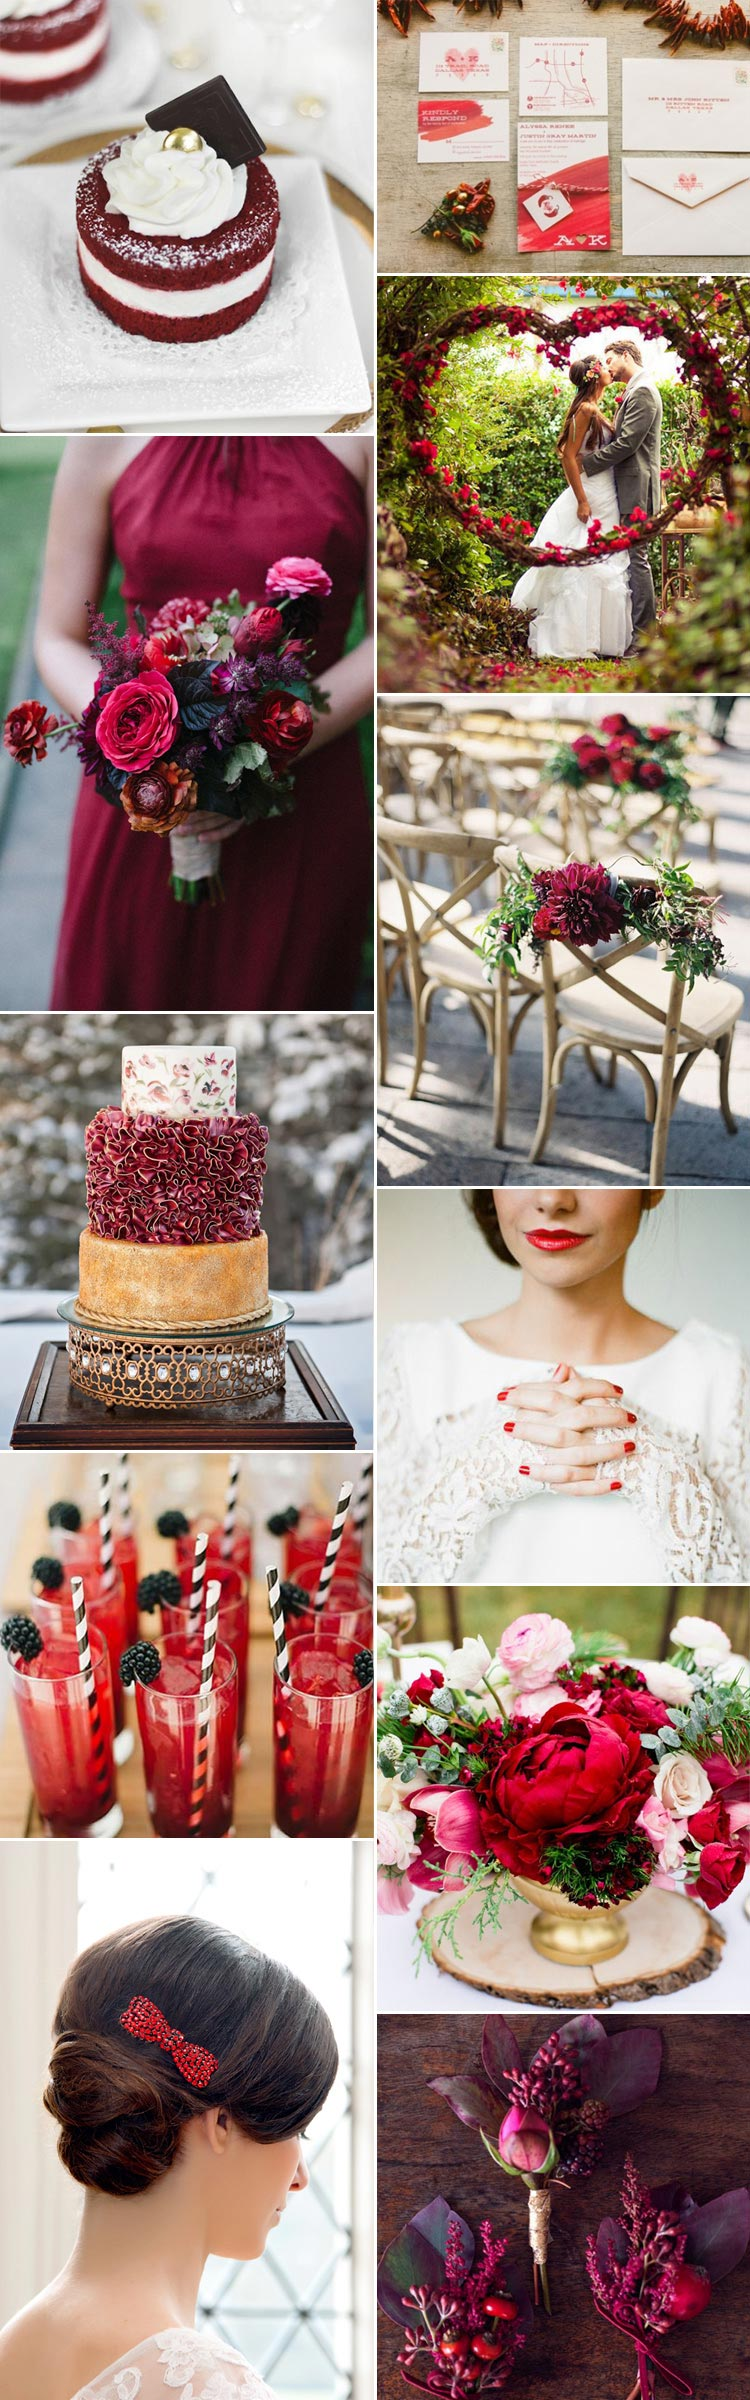 Stunning inspirational ideas for a ruby wedding